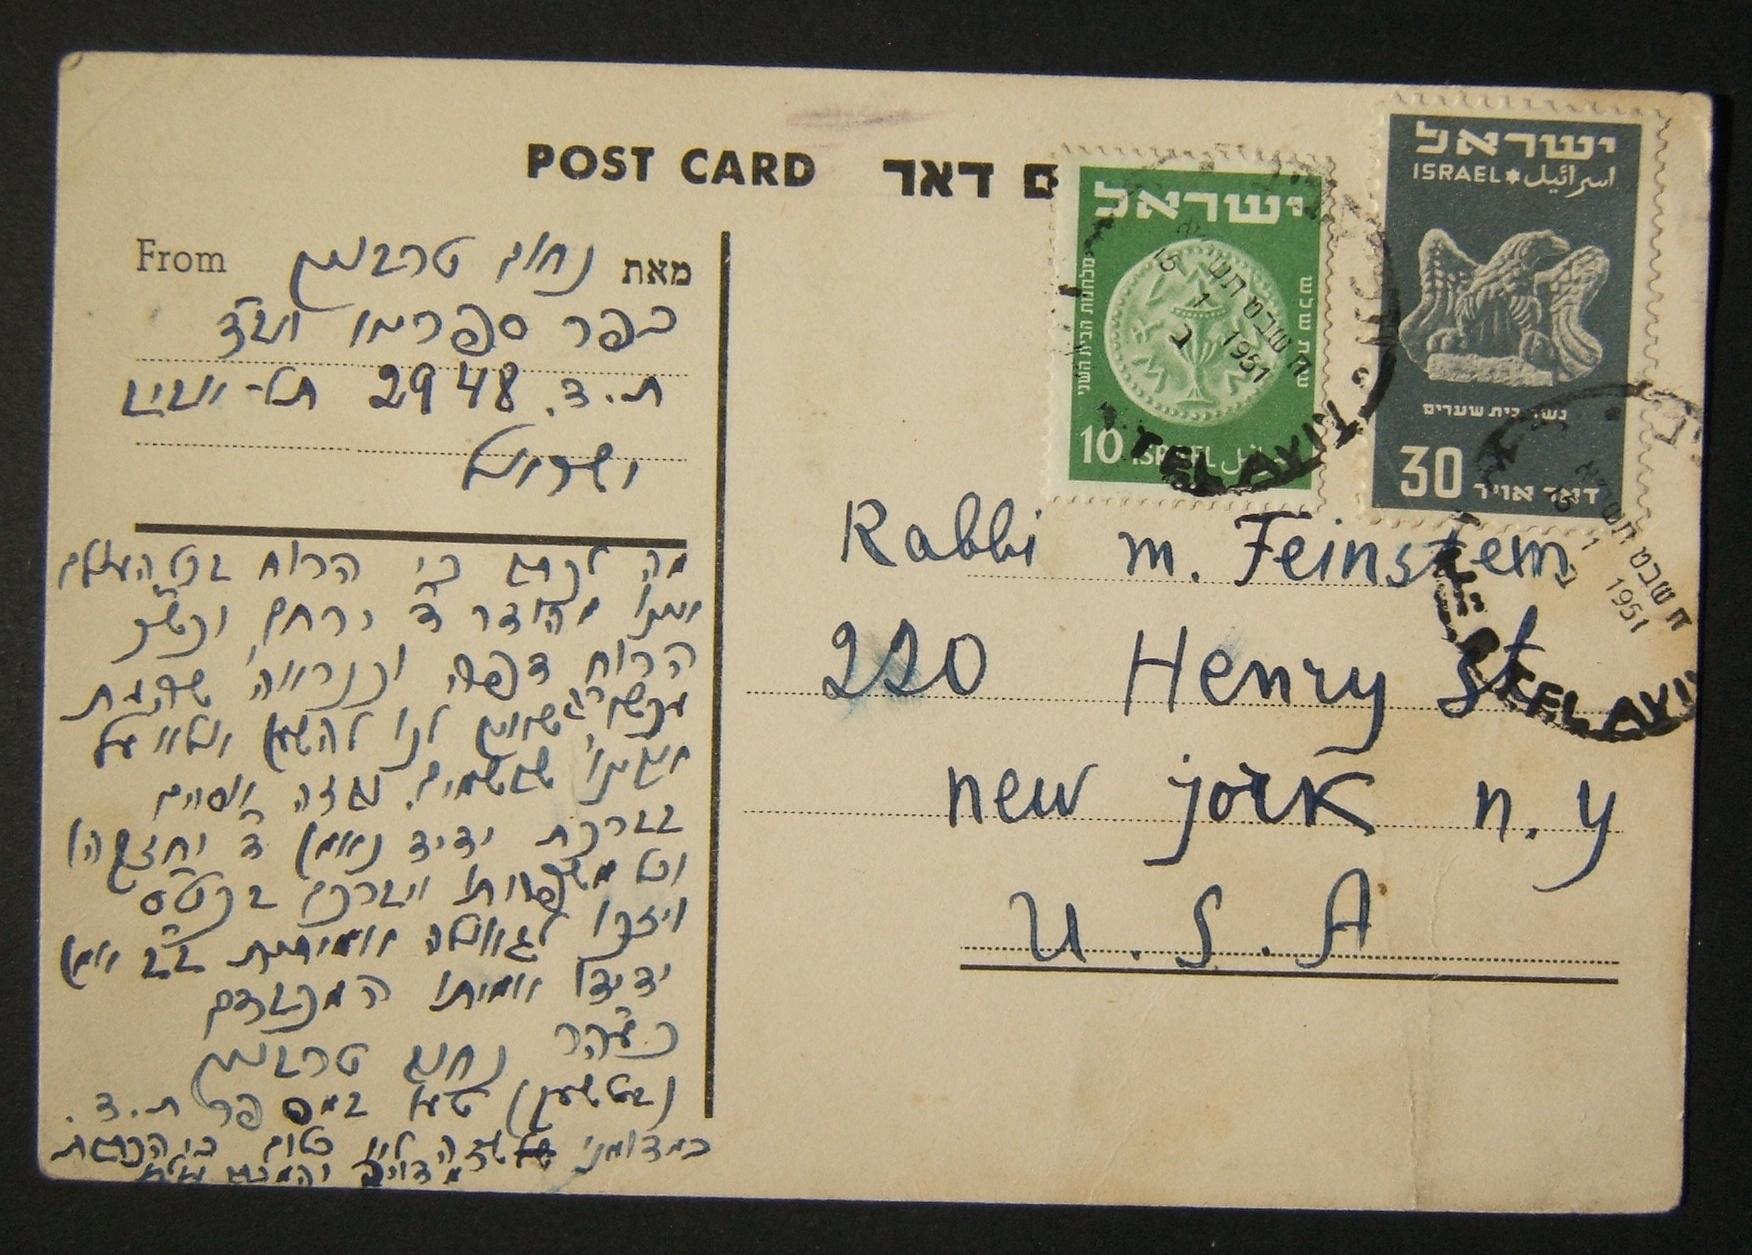 1950 1st airmail / PO's, rates & routes: 15-1-1951 airmailed pc ex TLV to NYC franked 40pr at the FA-2a period pc rate using mix of 30pr (Ba33) + 10pr 1950 3rd Coinage (Ba43) tied